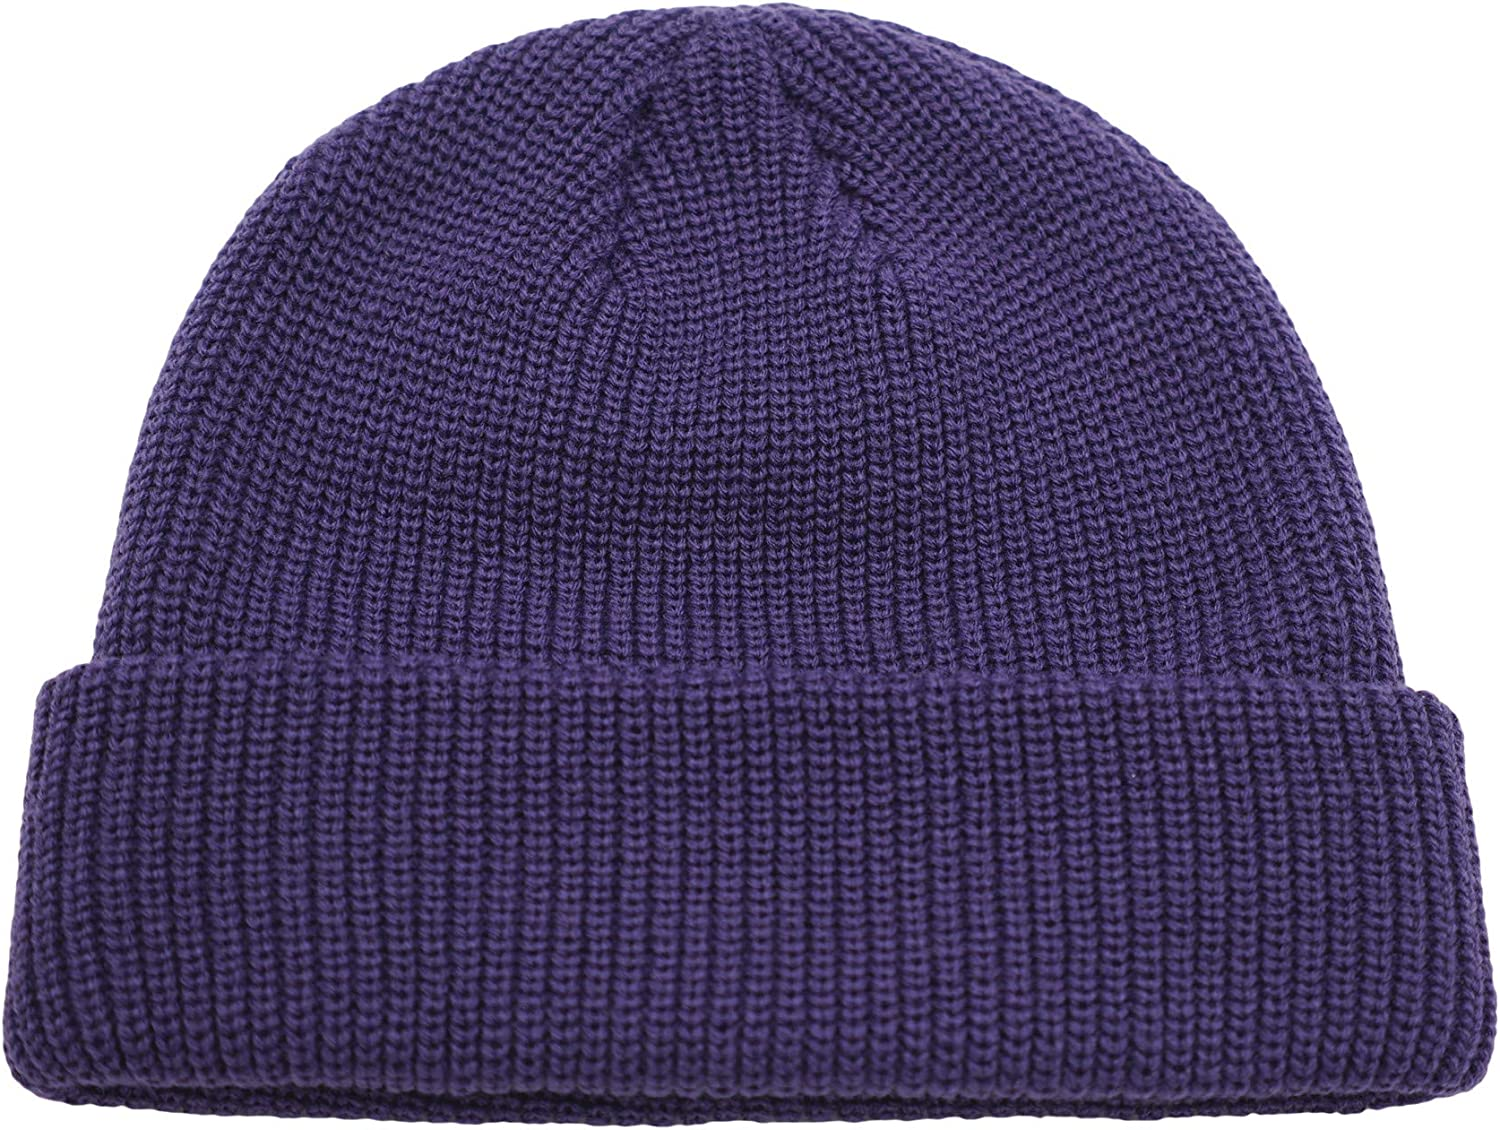 Connectyle Max 49% OFF Classic Men's Warm Winter Knit Cuff Hats Bean Daily bargain sale Acrylic